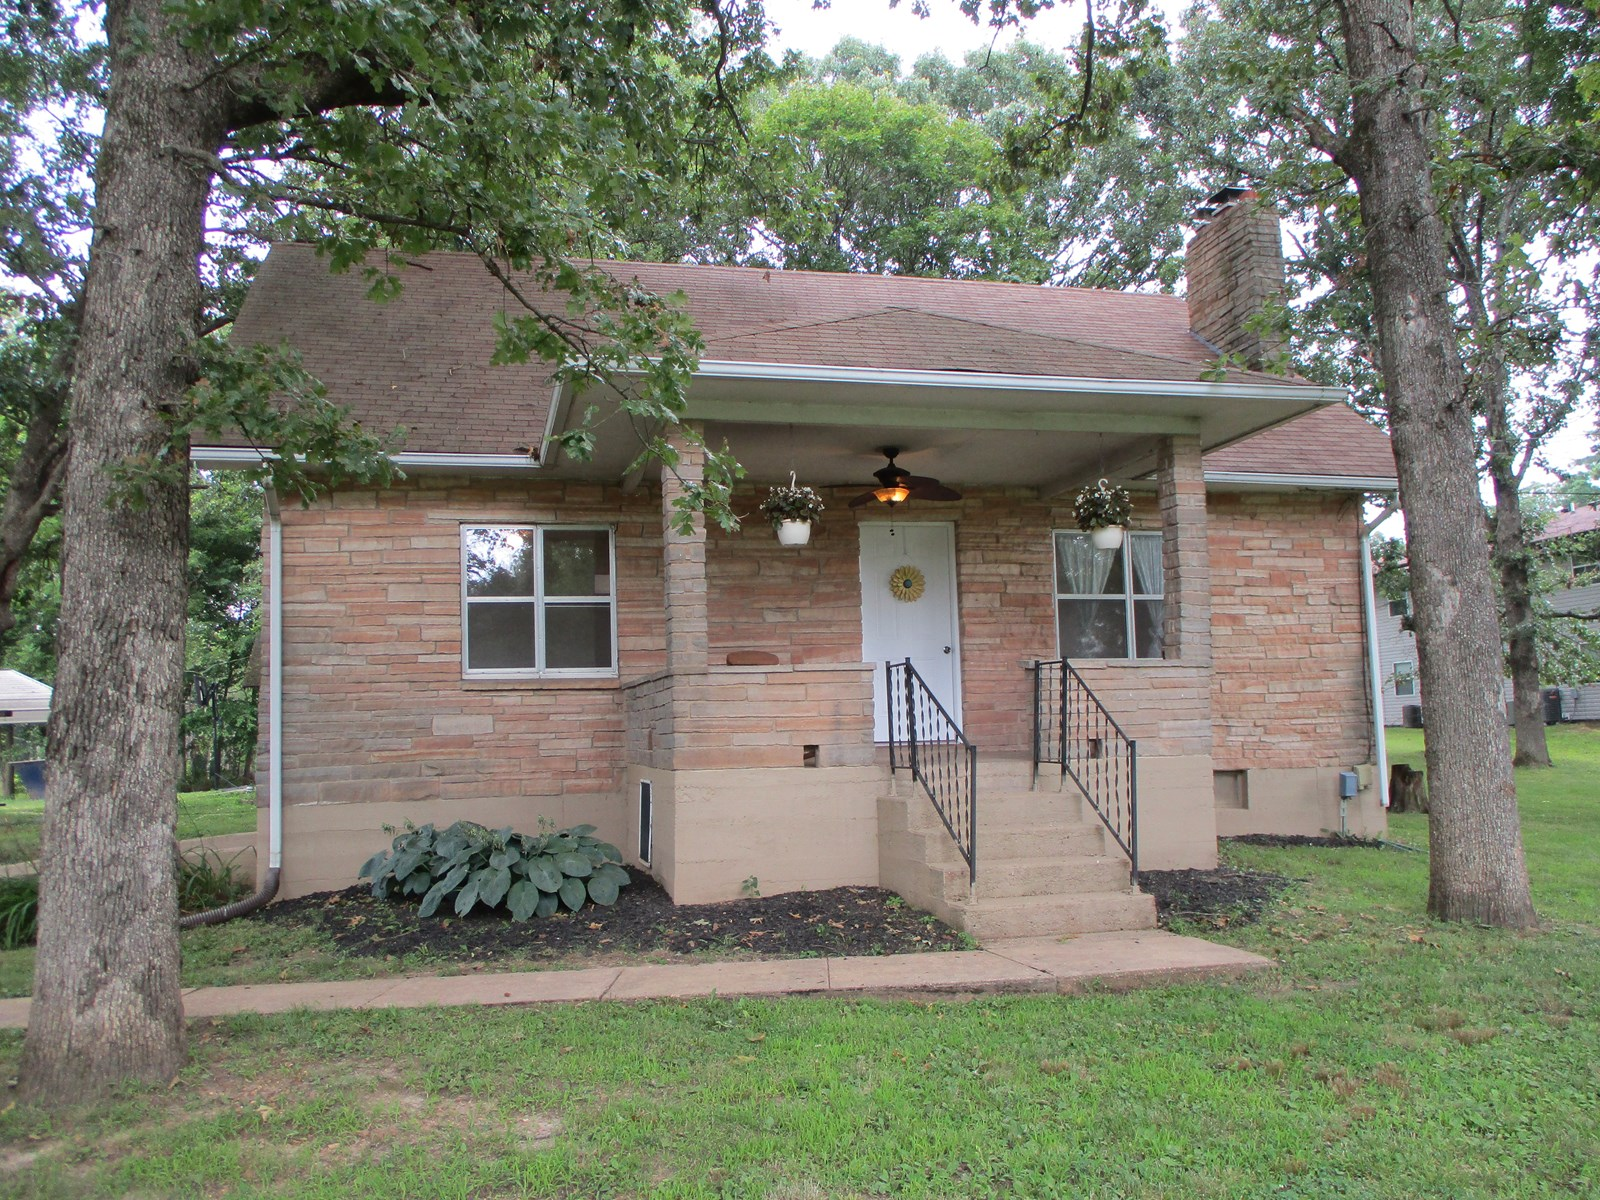 4 Bedroom, 1 1/2 Bath Stone Home on a little over 1 acre.